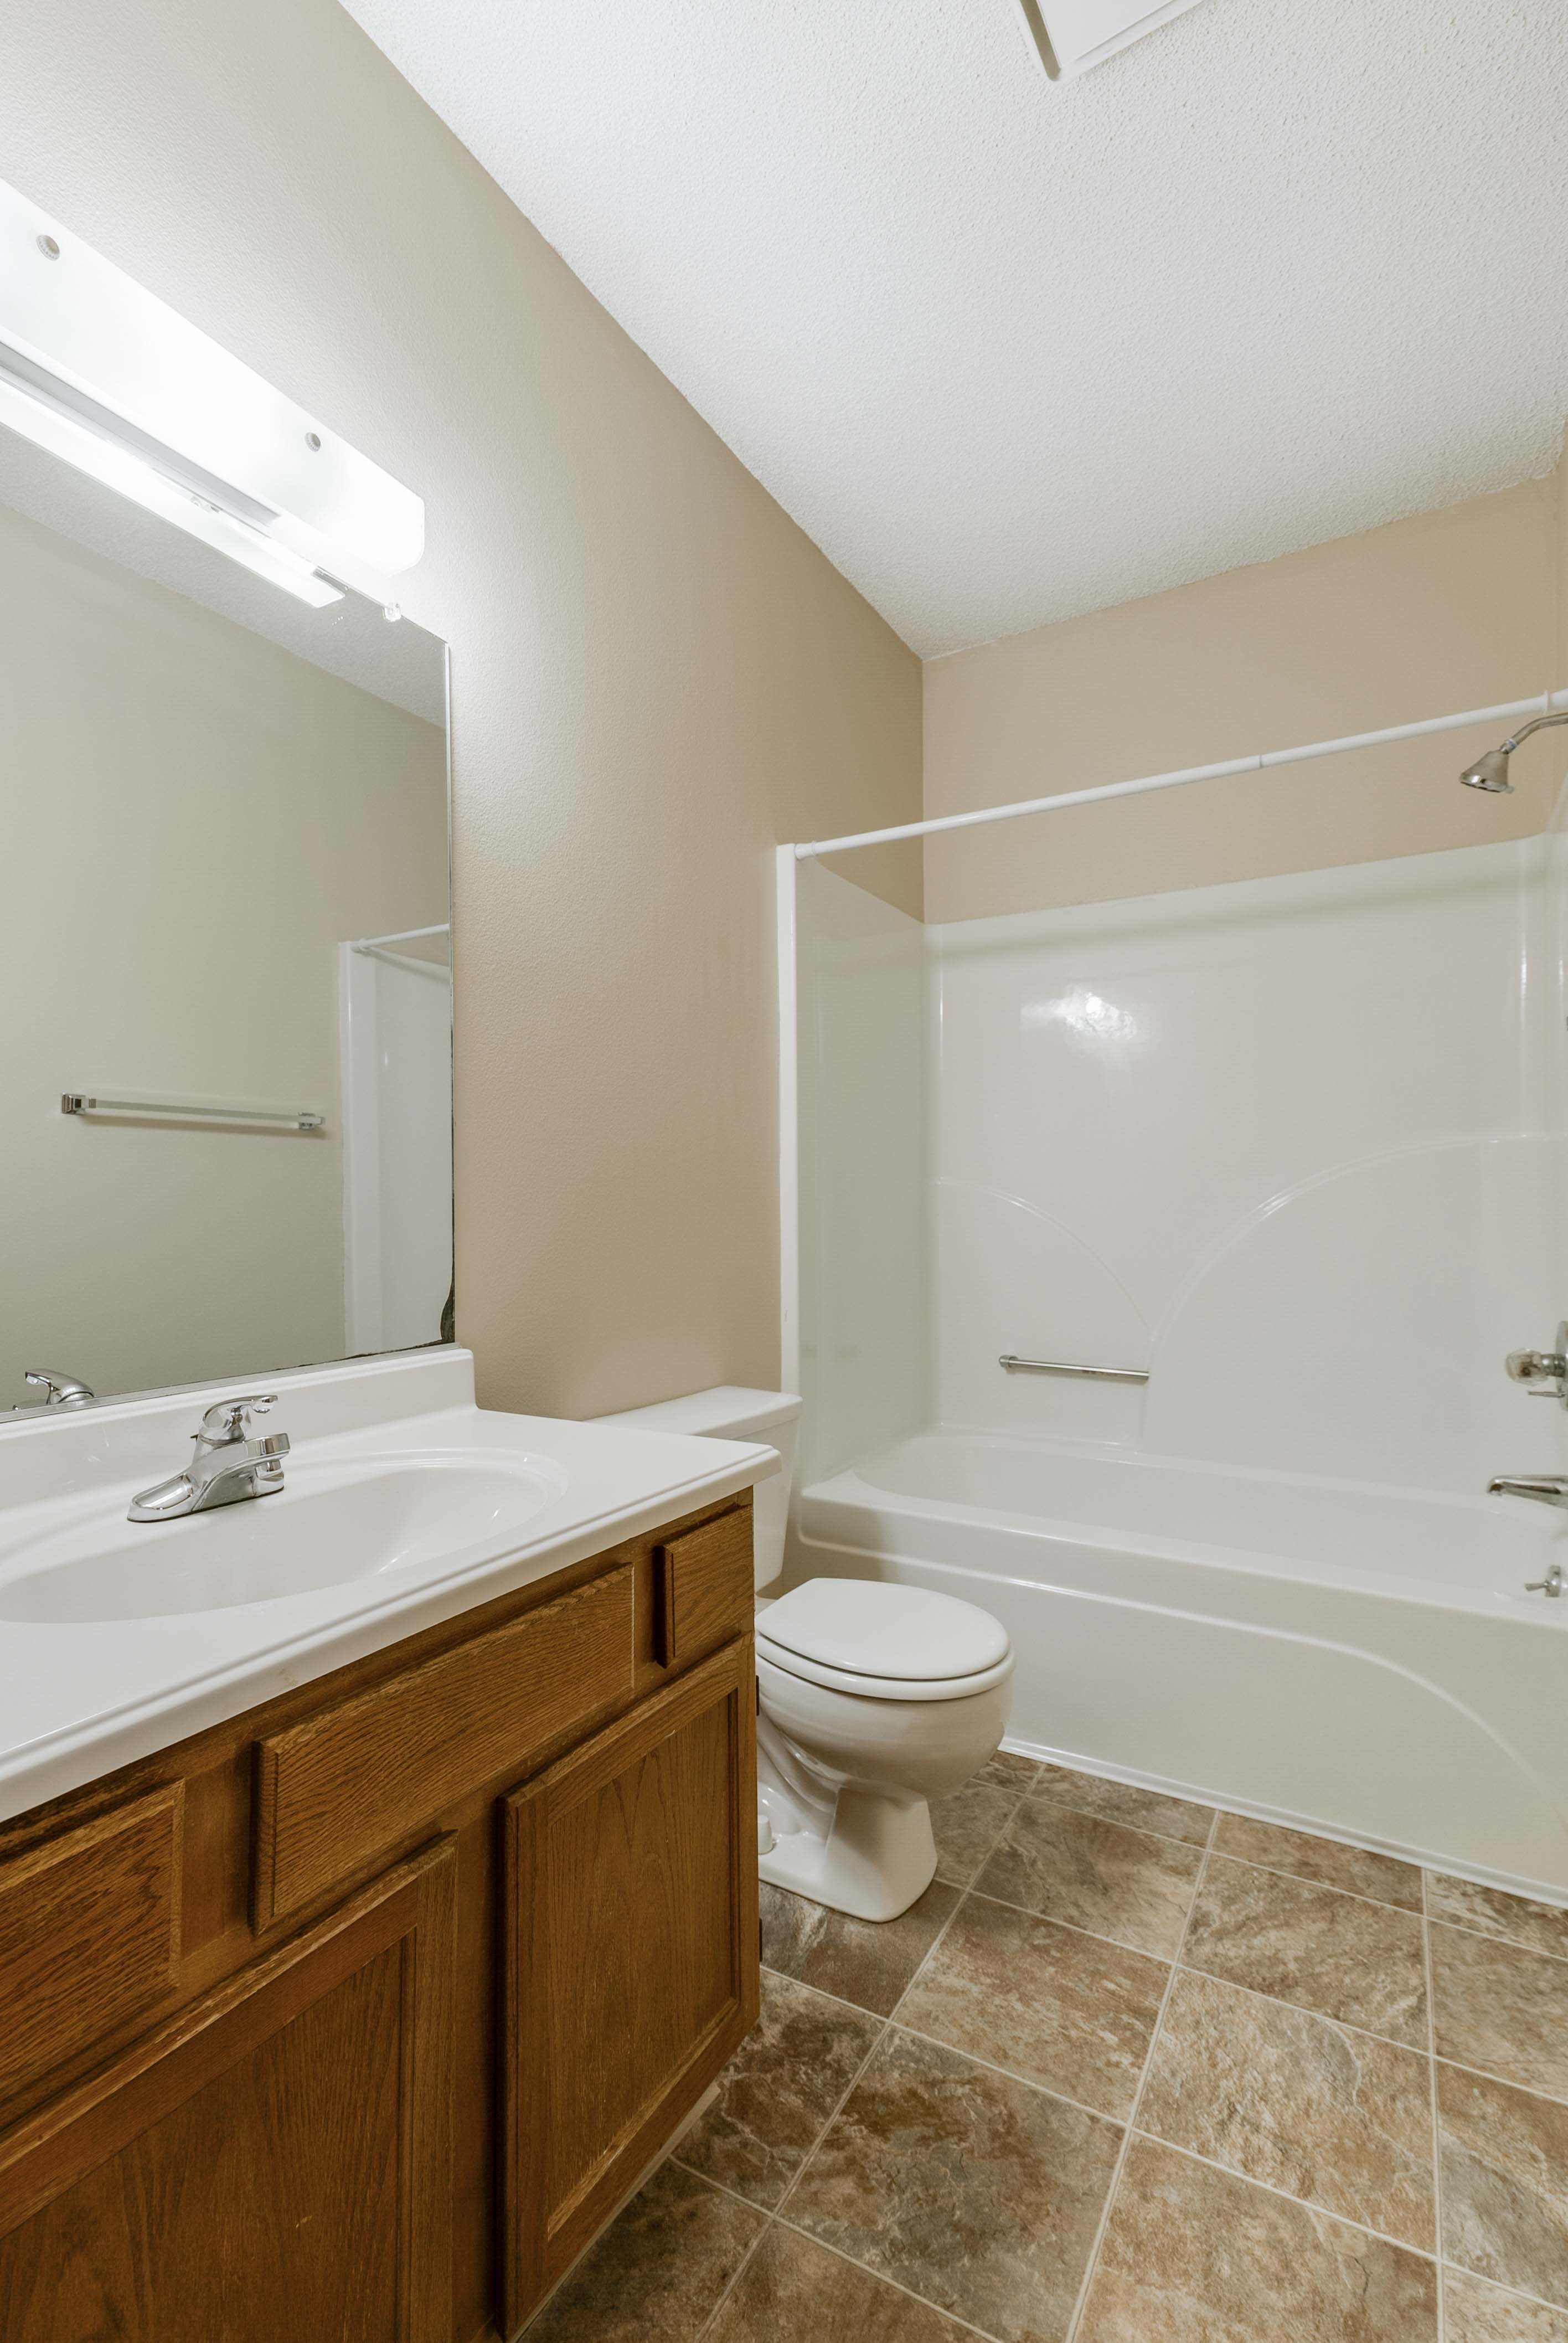 Bathroom with vanity for storage and tub/shower combo at Wyndham Heights